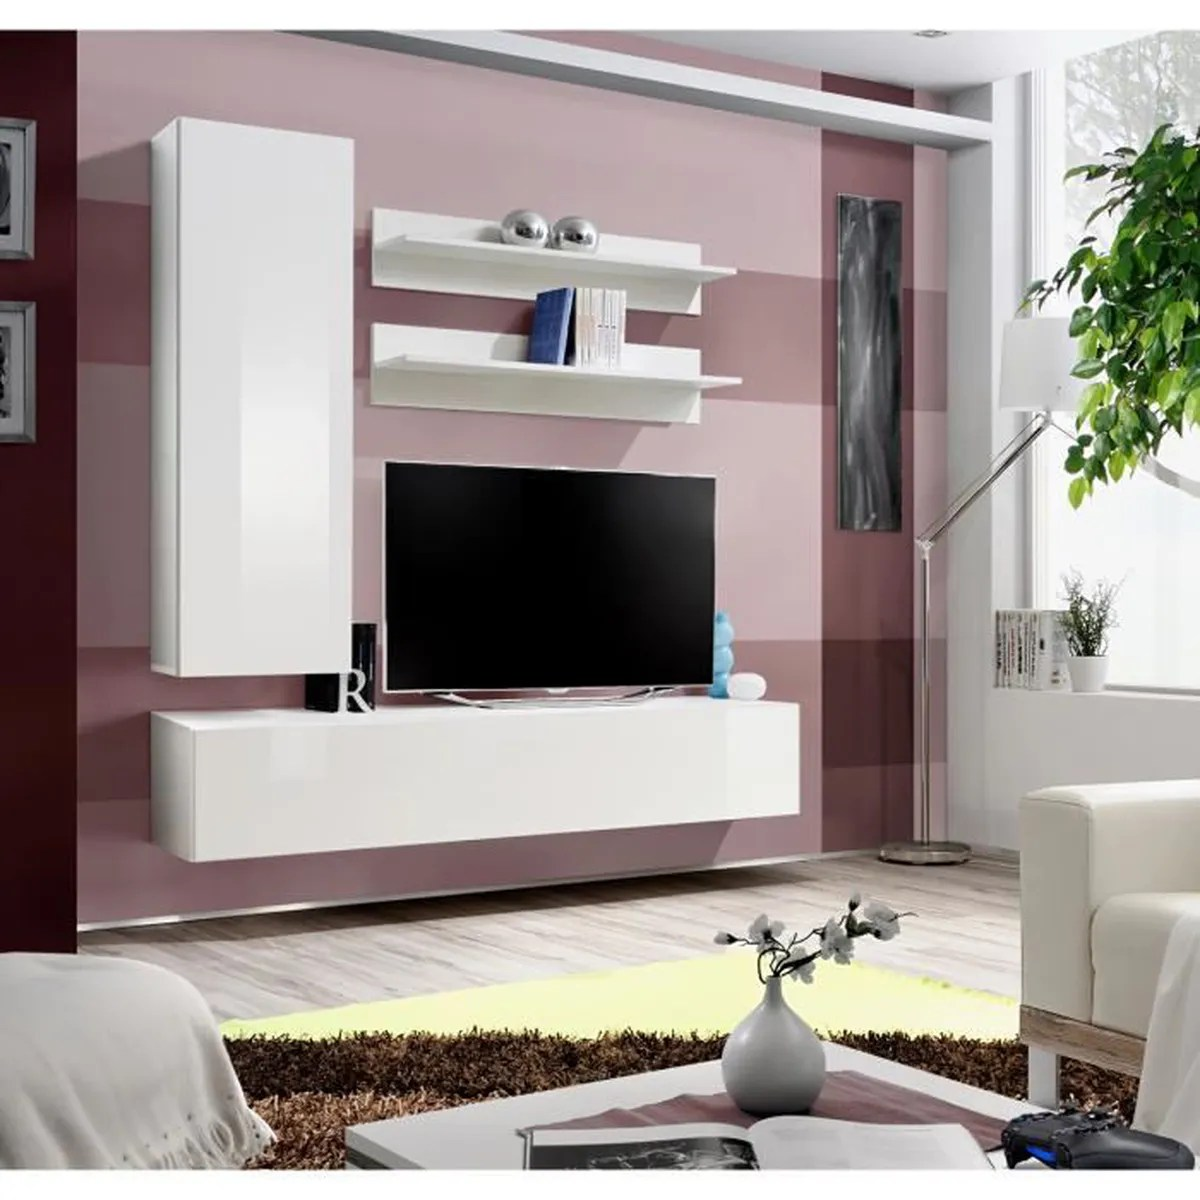 Meuble Tv Fly Serie Meuble Tv Fly Serie